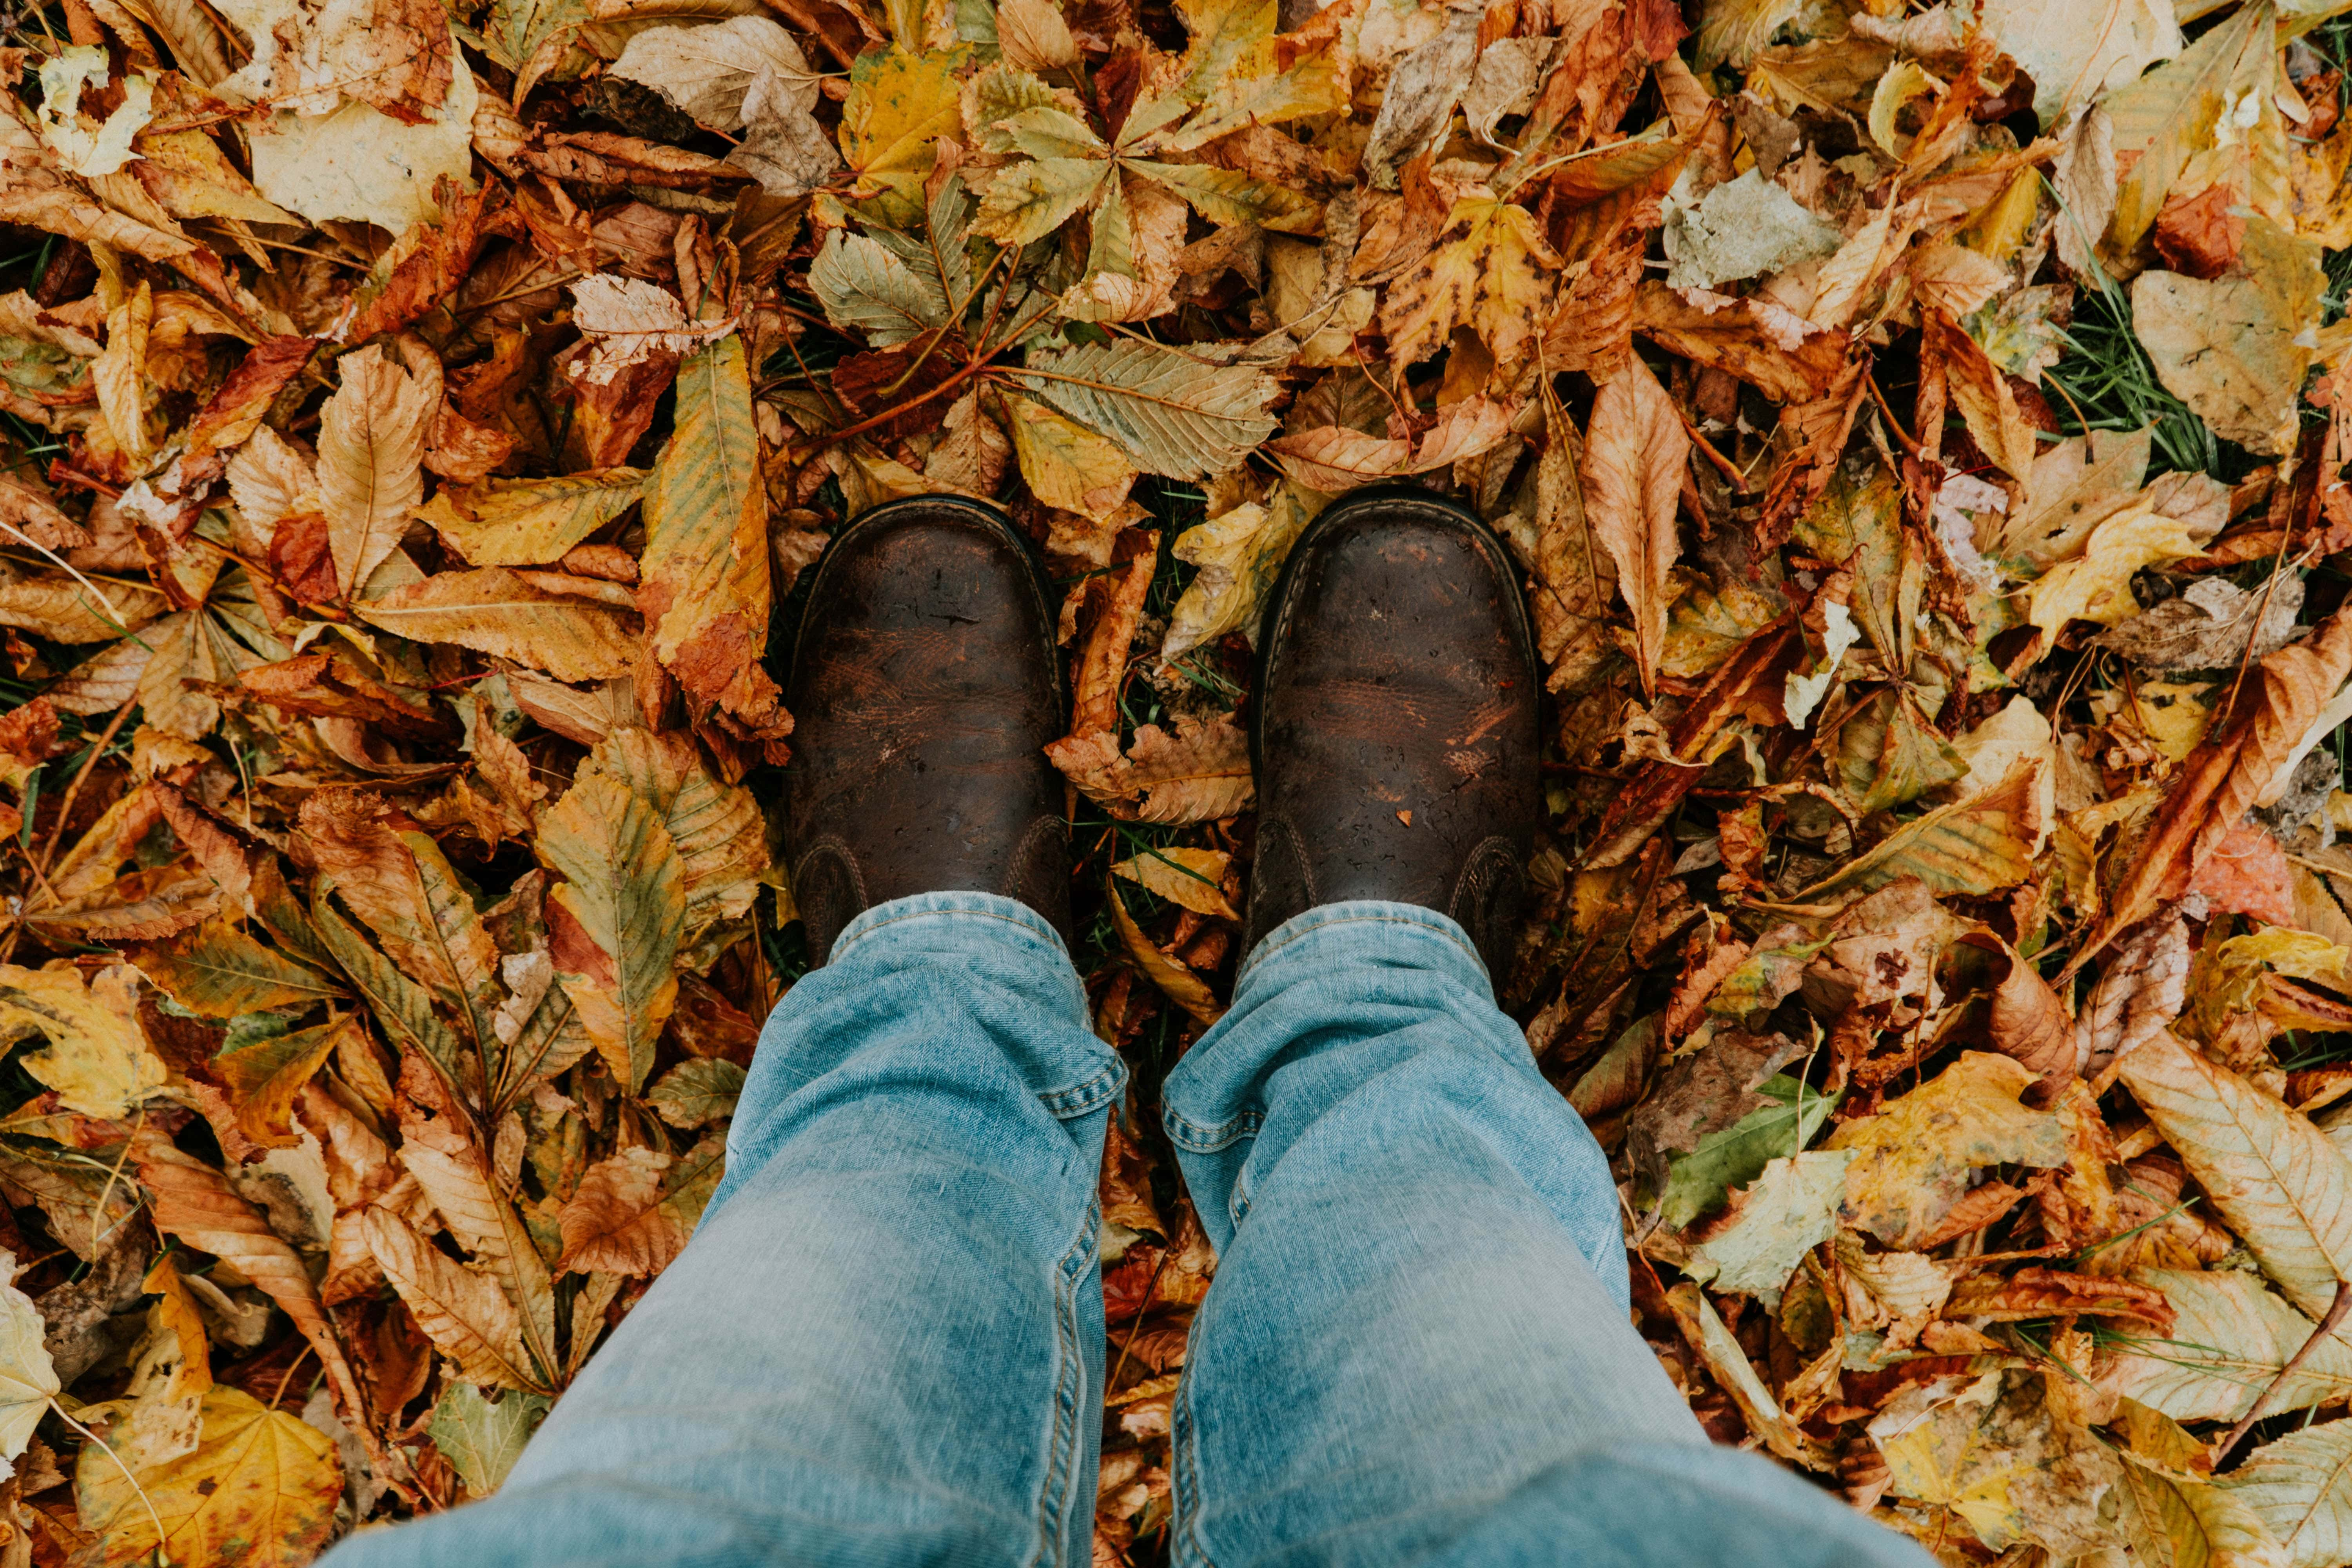 person standing in pile of leaves